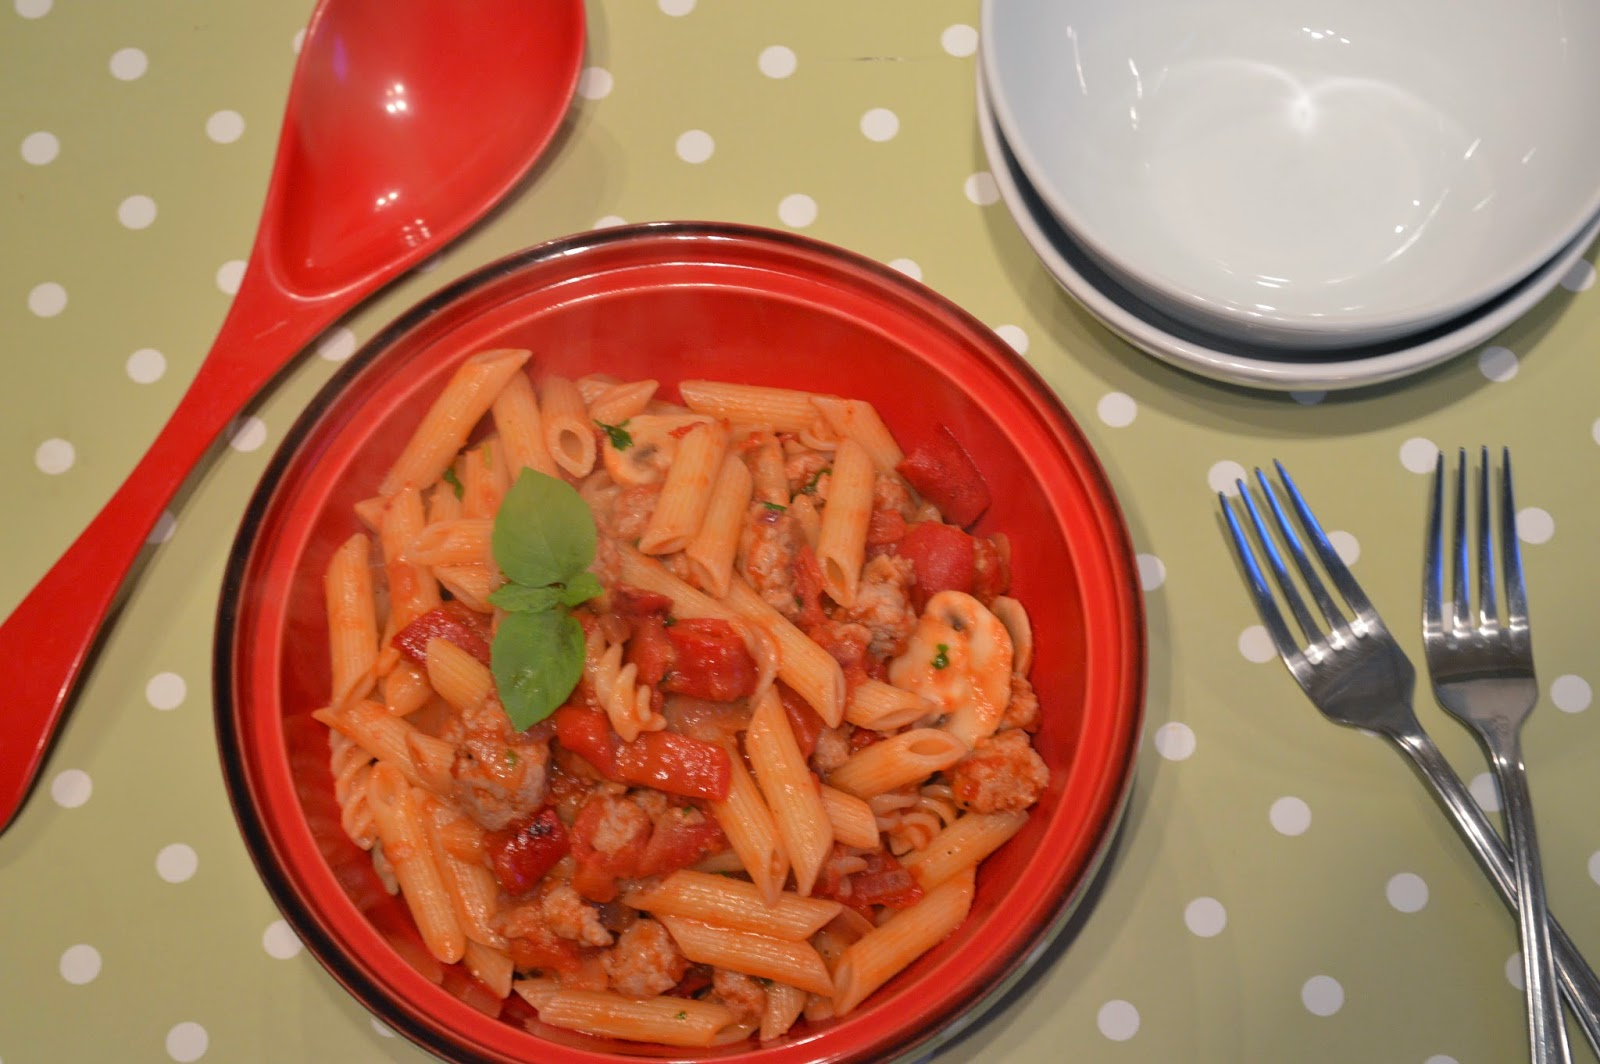 Sausage and Mushroom penne pasta in a bowl